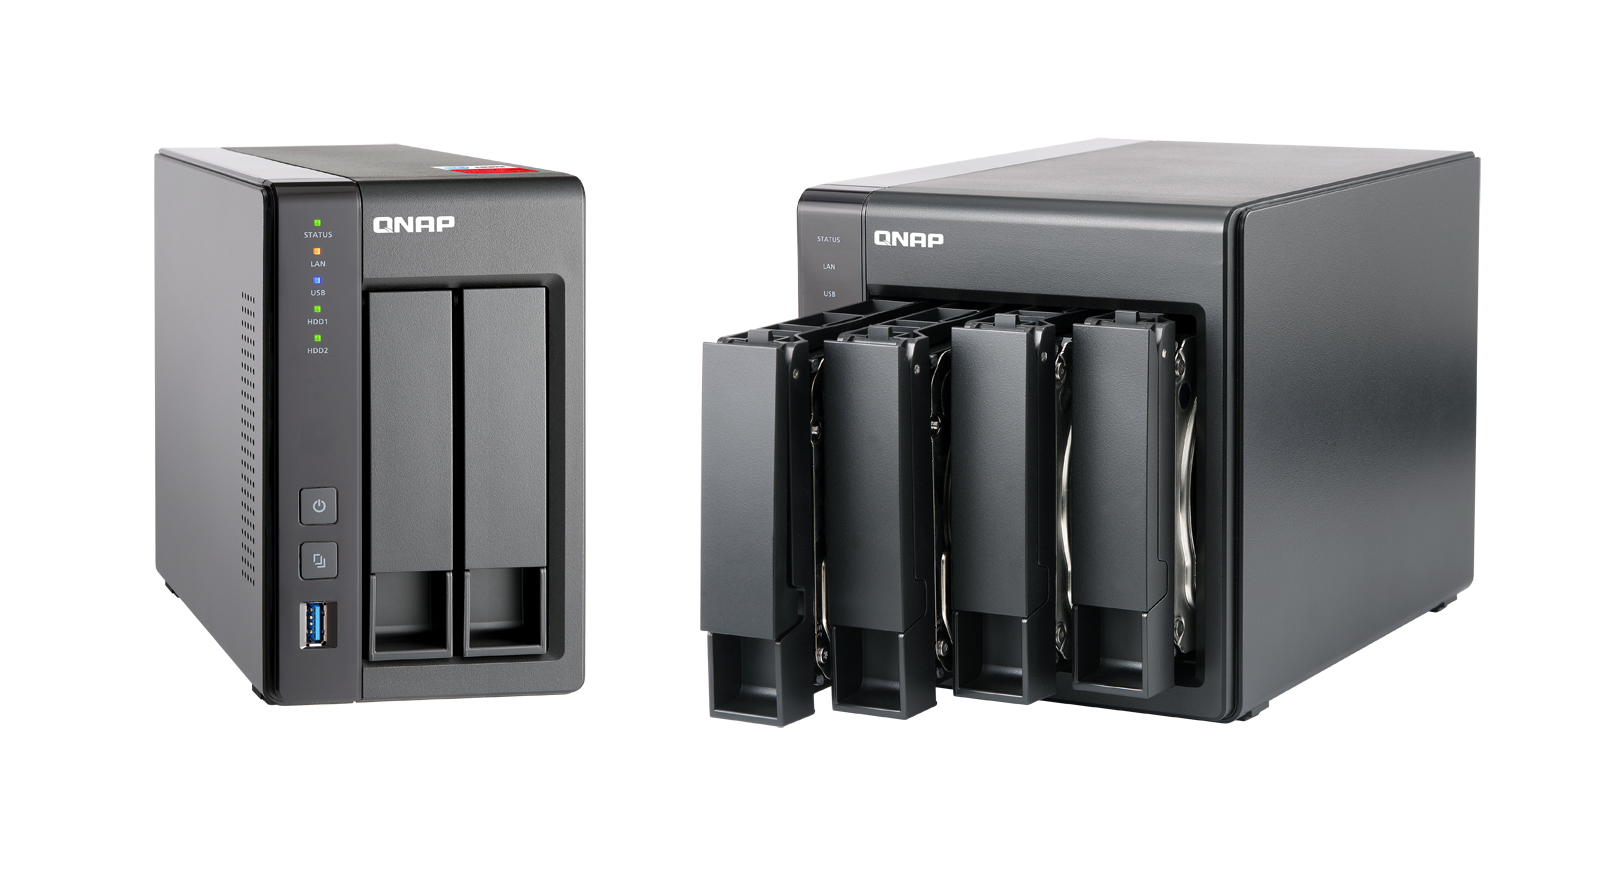 DOWNLOAD DRIVER: QNAP TS-569 PRO TURBO NAS QTS